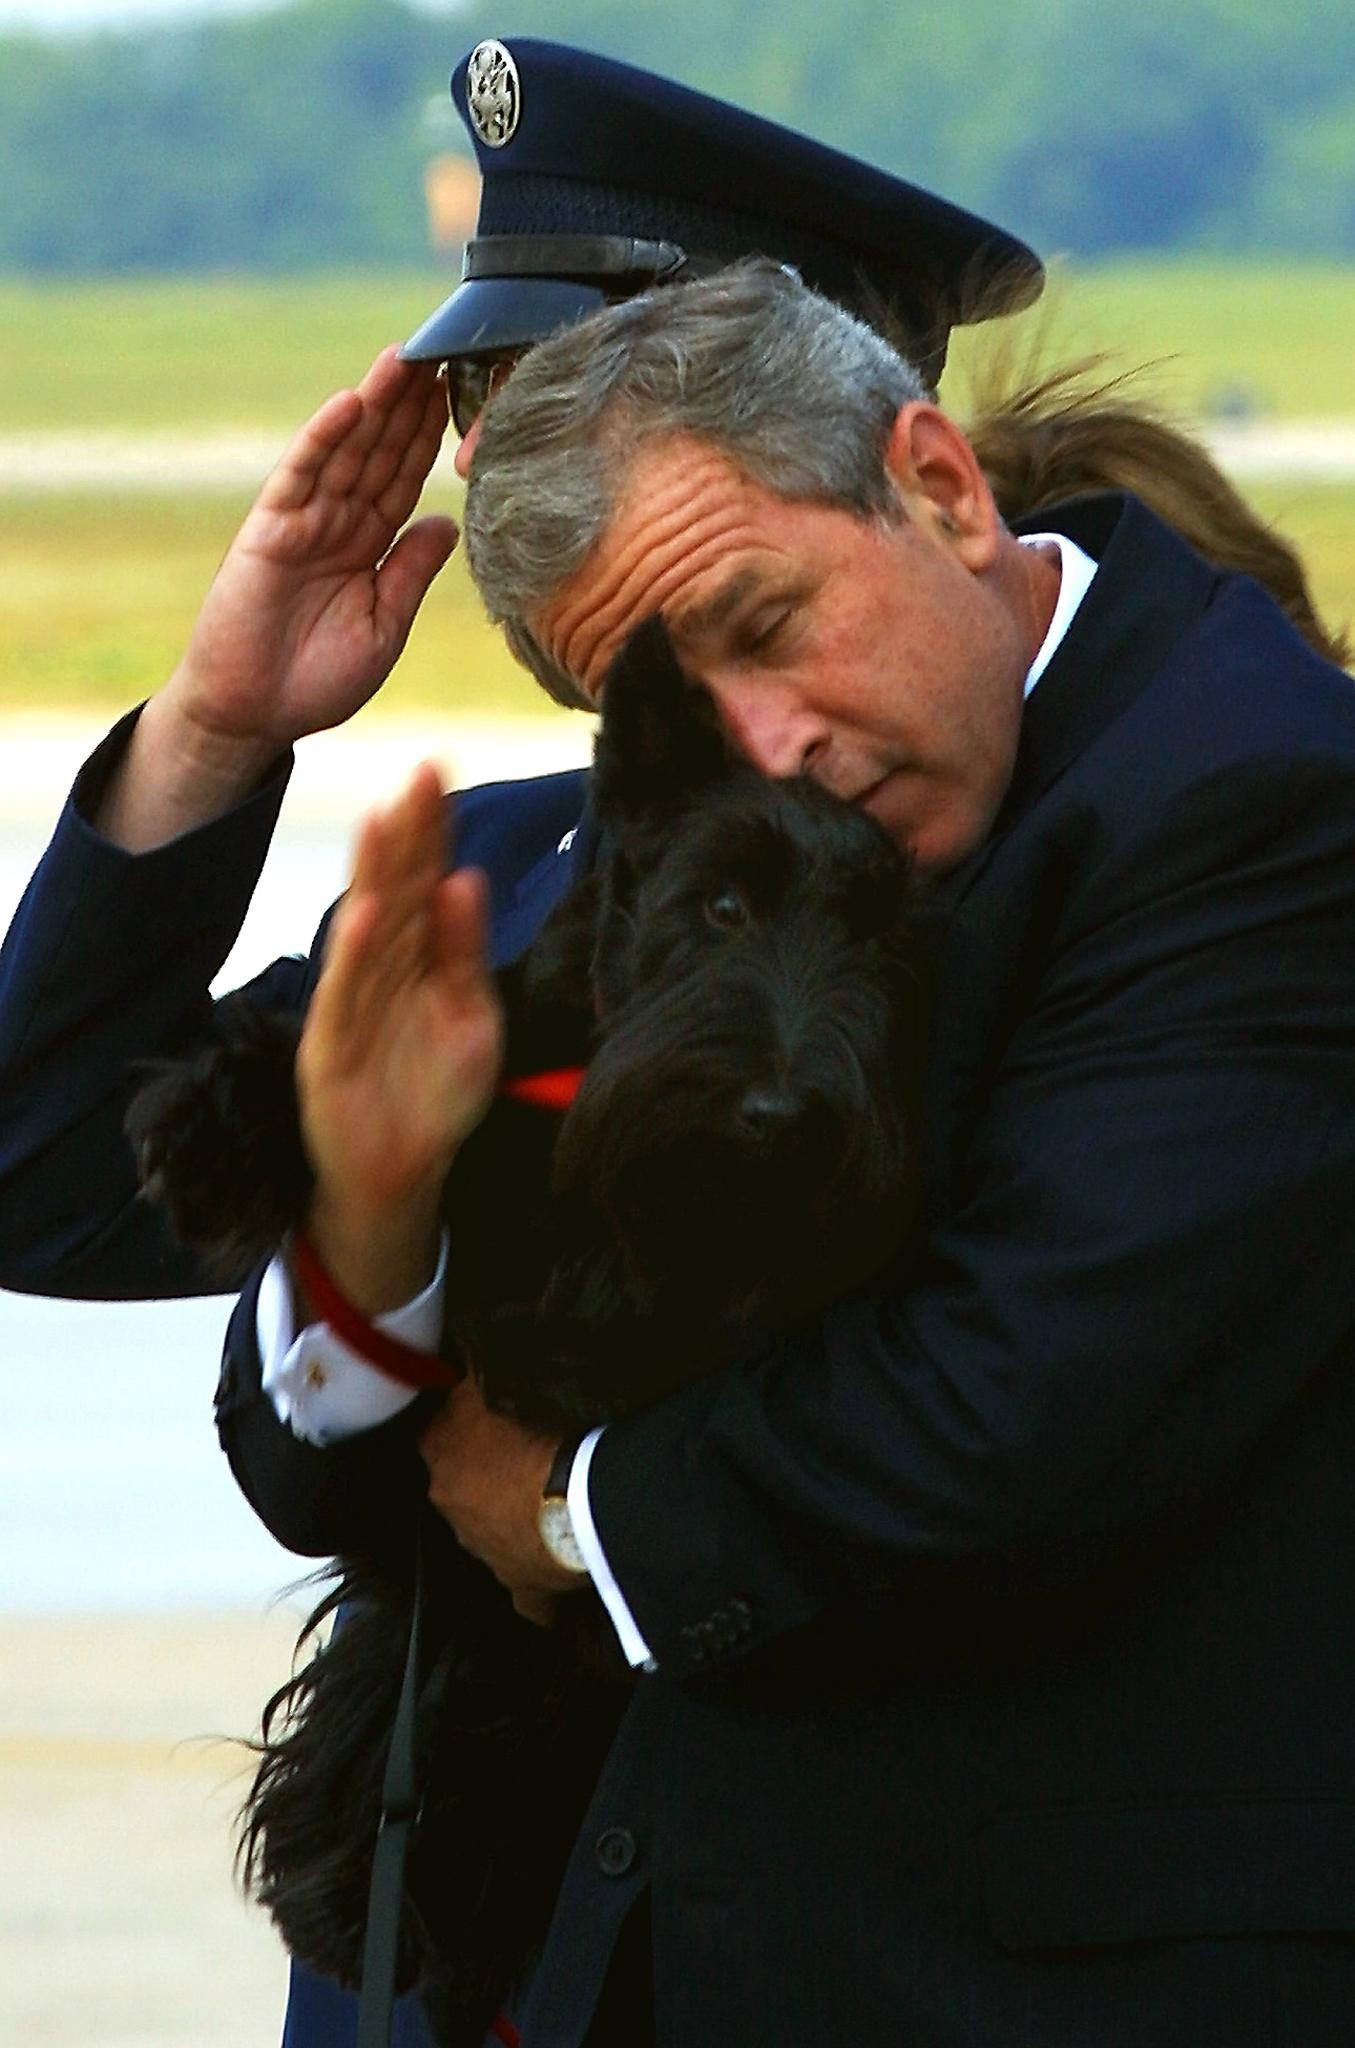 President George W. Bush tries to salute the security officers at the steps of Air Force One as he holds his dog Barney, after returning from a speech to the US Conference of Mayors in Detroit, MI.